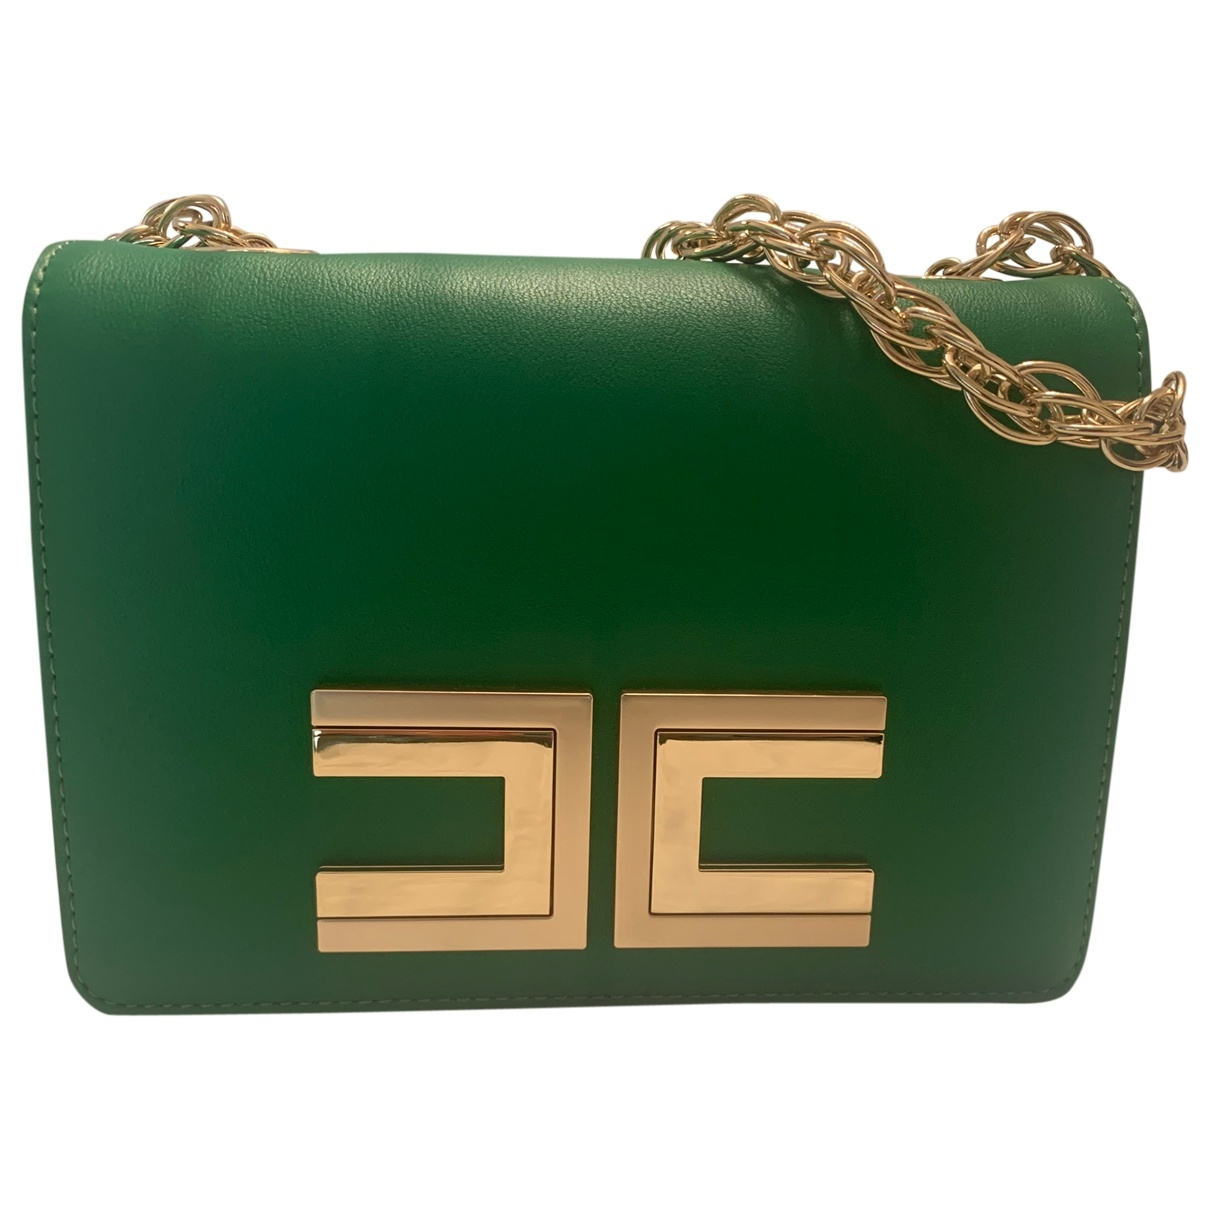 Elisabetta Franchi \N Green handbag for Women \N